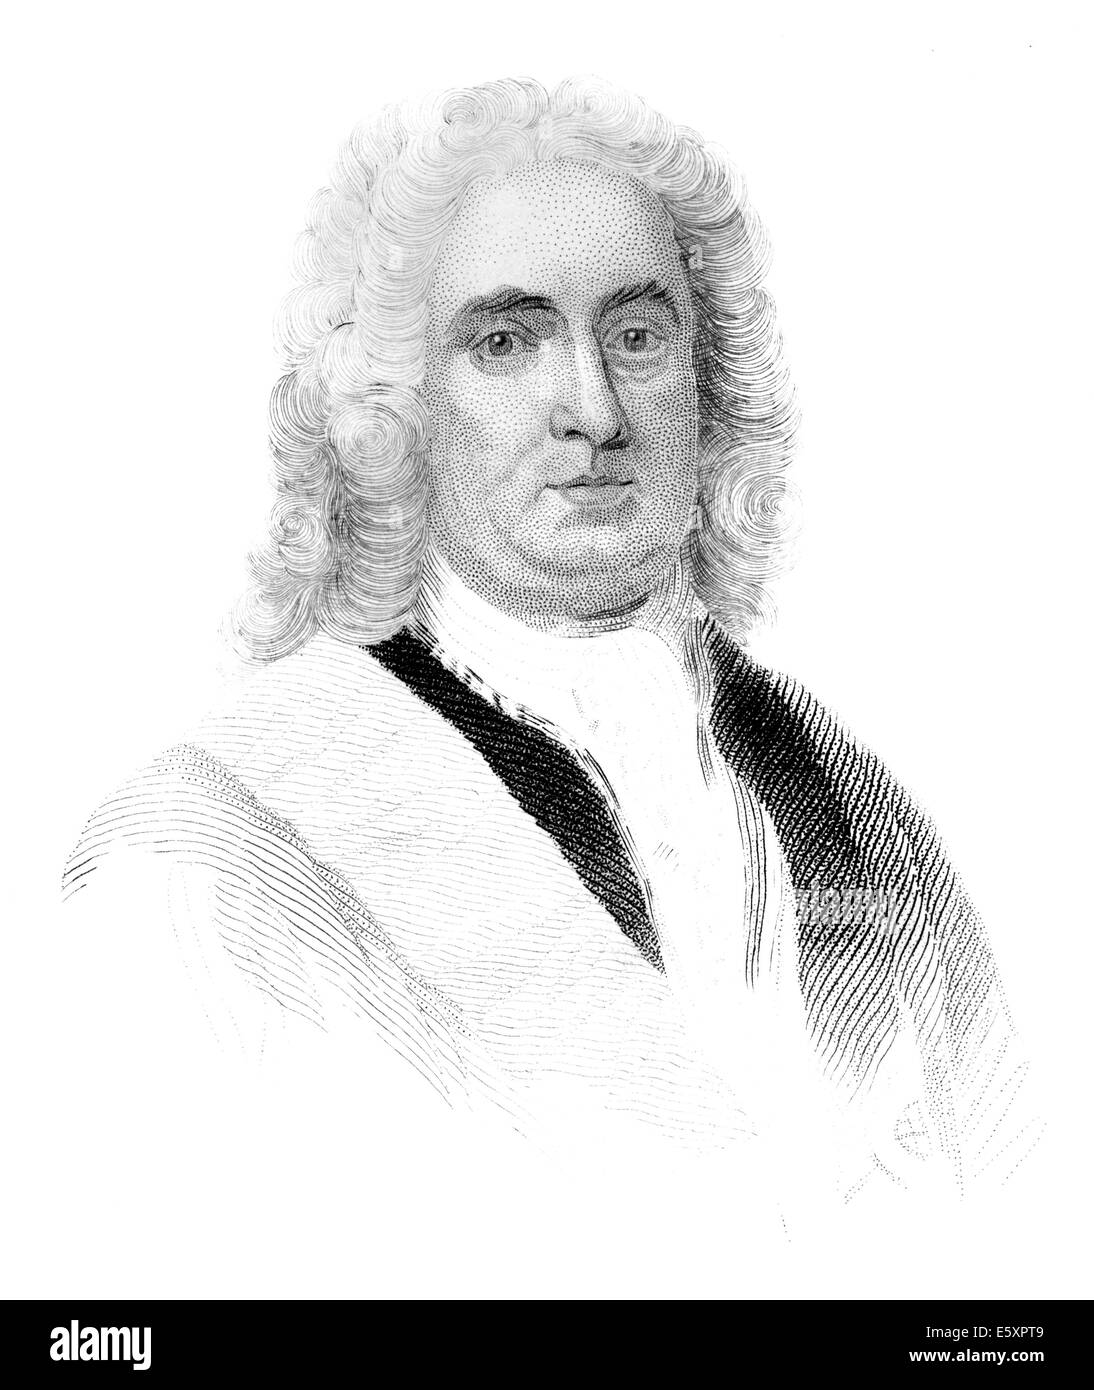 Robert Walpole, 1st Earl of Orford, 1676 - 1745, the first Prime Minister of Great Britain, Robert Walpole, 1. Earl - Stock Image